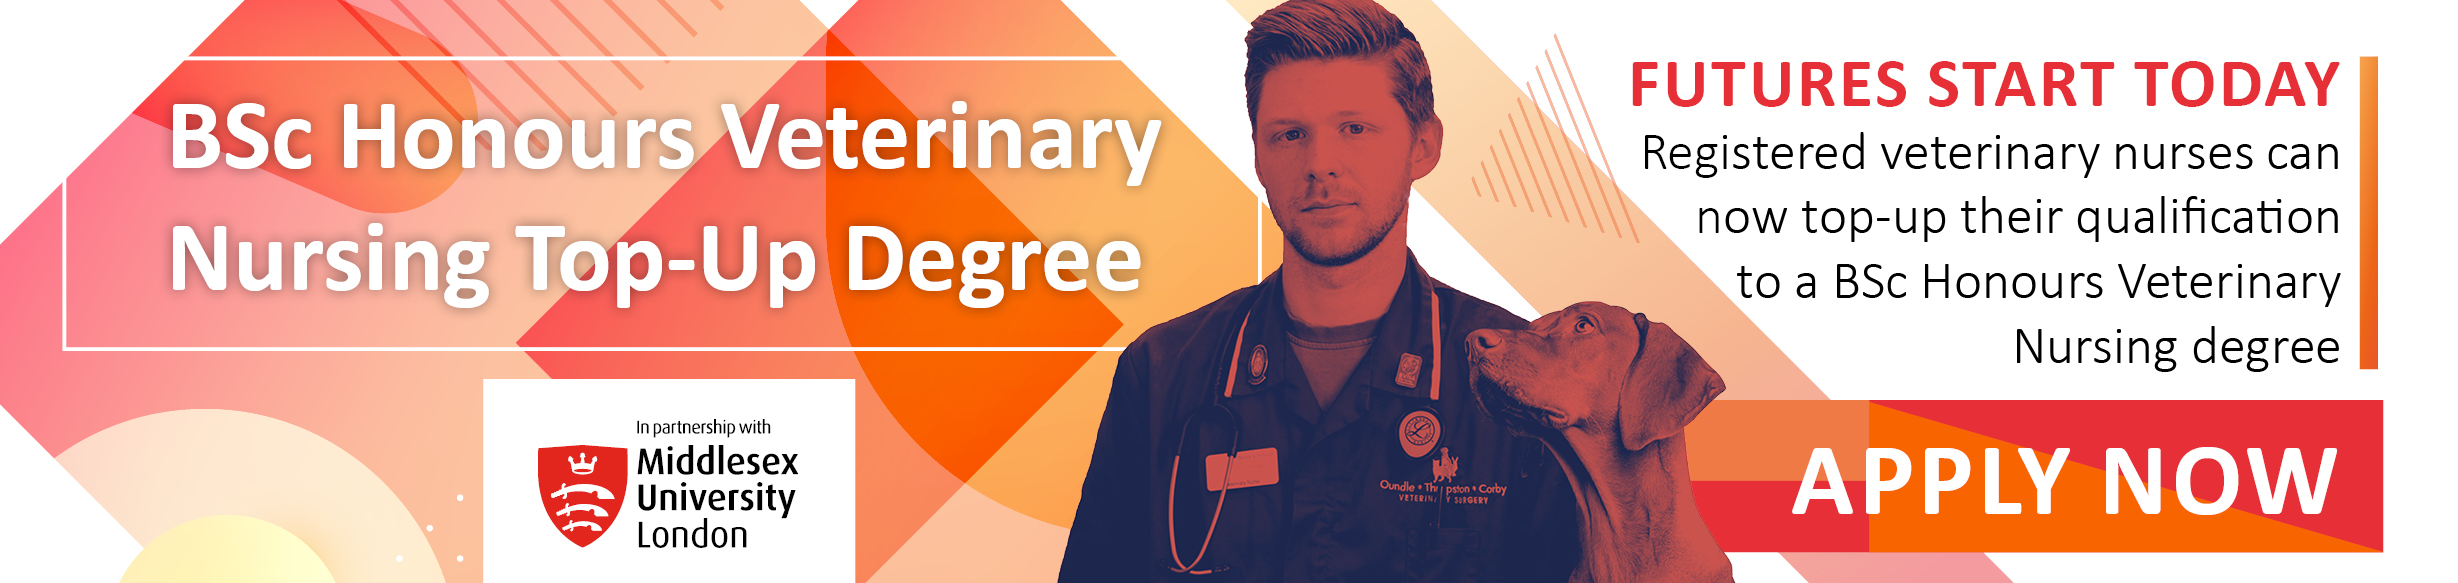 Course: BSc Honours Veterinary Nursing Top-Up Degree (Middlesex University)